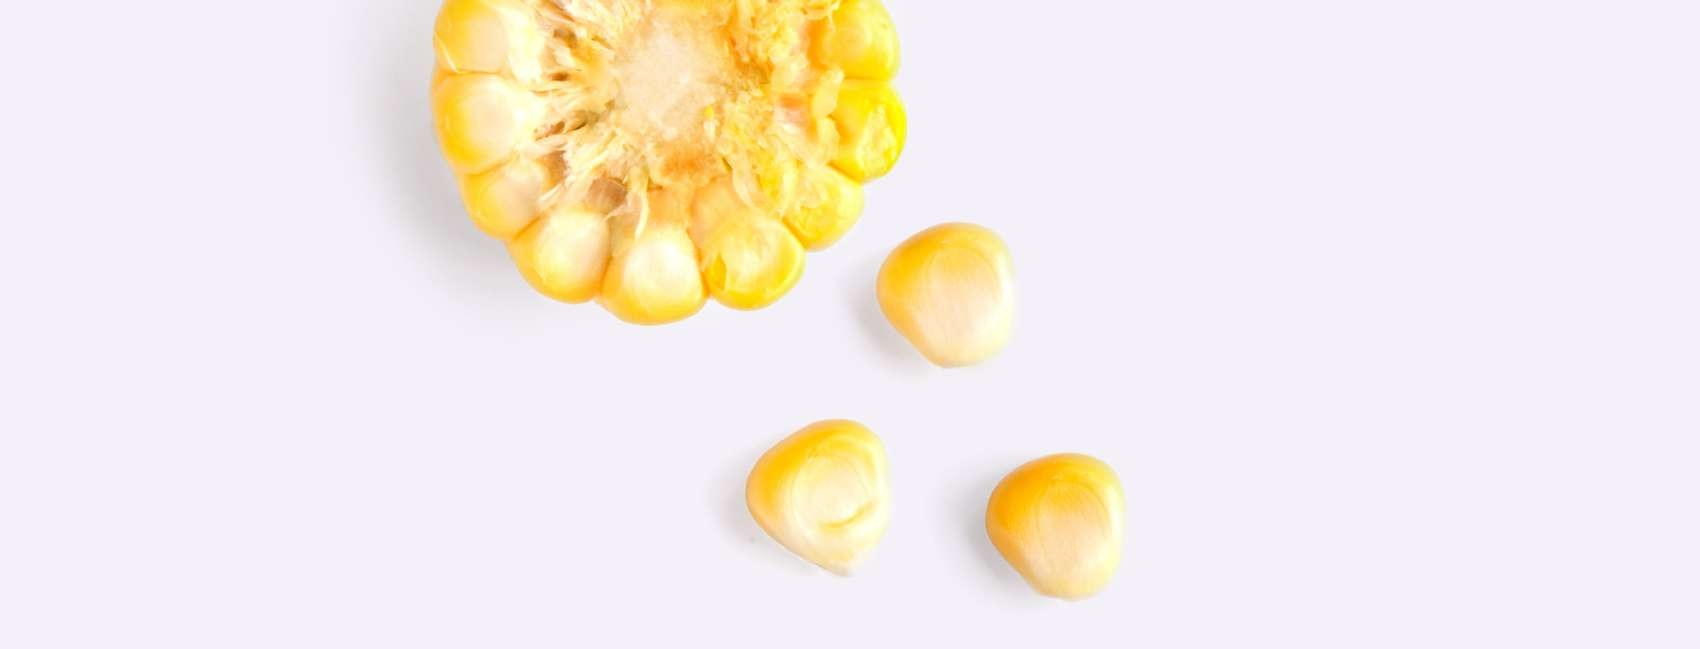 Corn kernels and cross section of husk on grey background